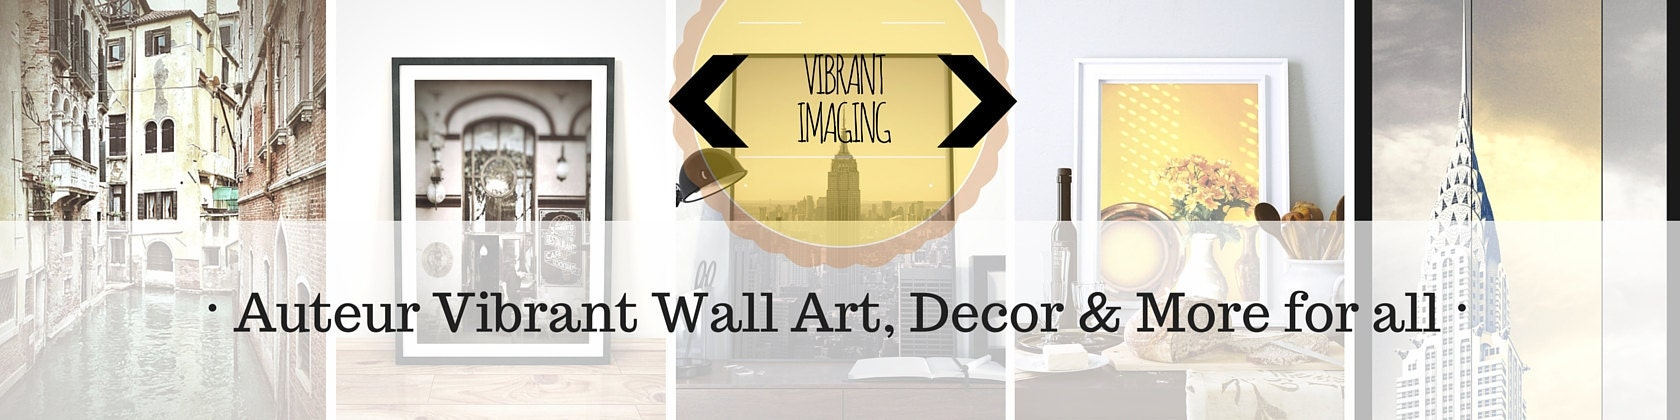 Fine Art Photography Prints Vibrant Wall Art by VibrantImaging